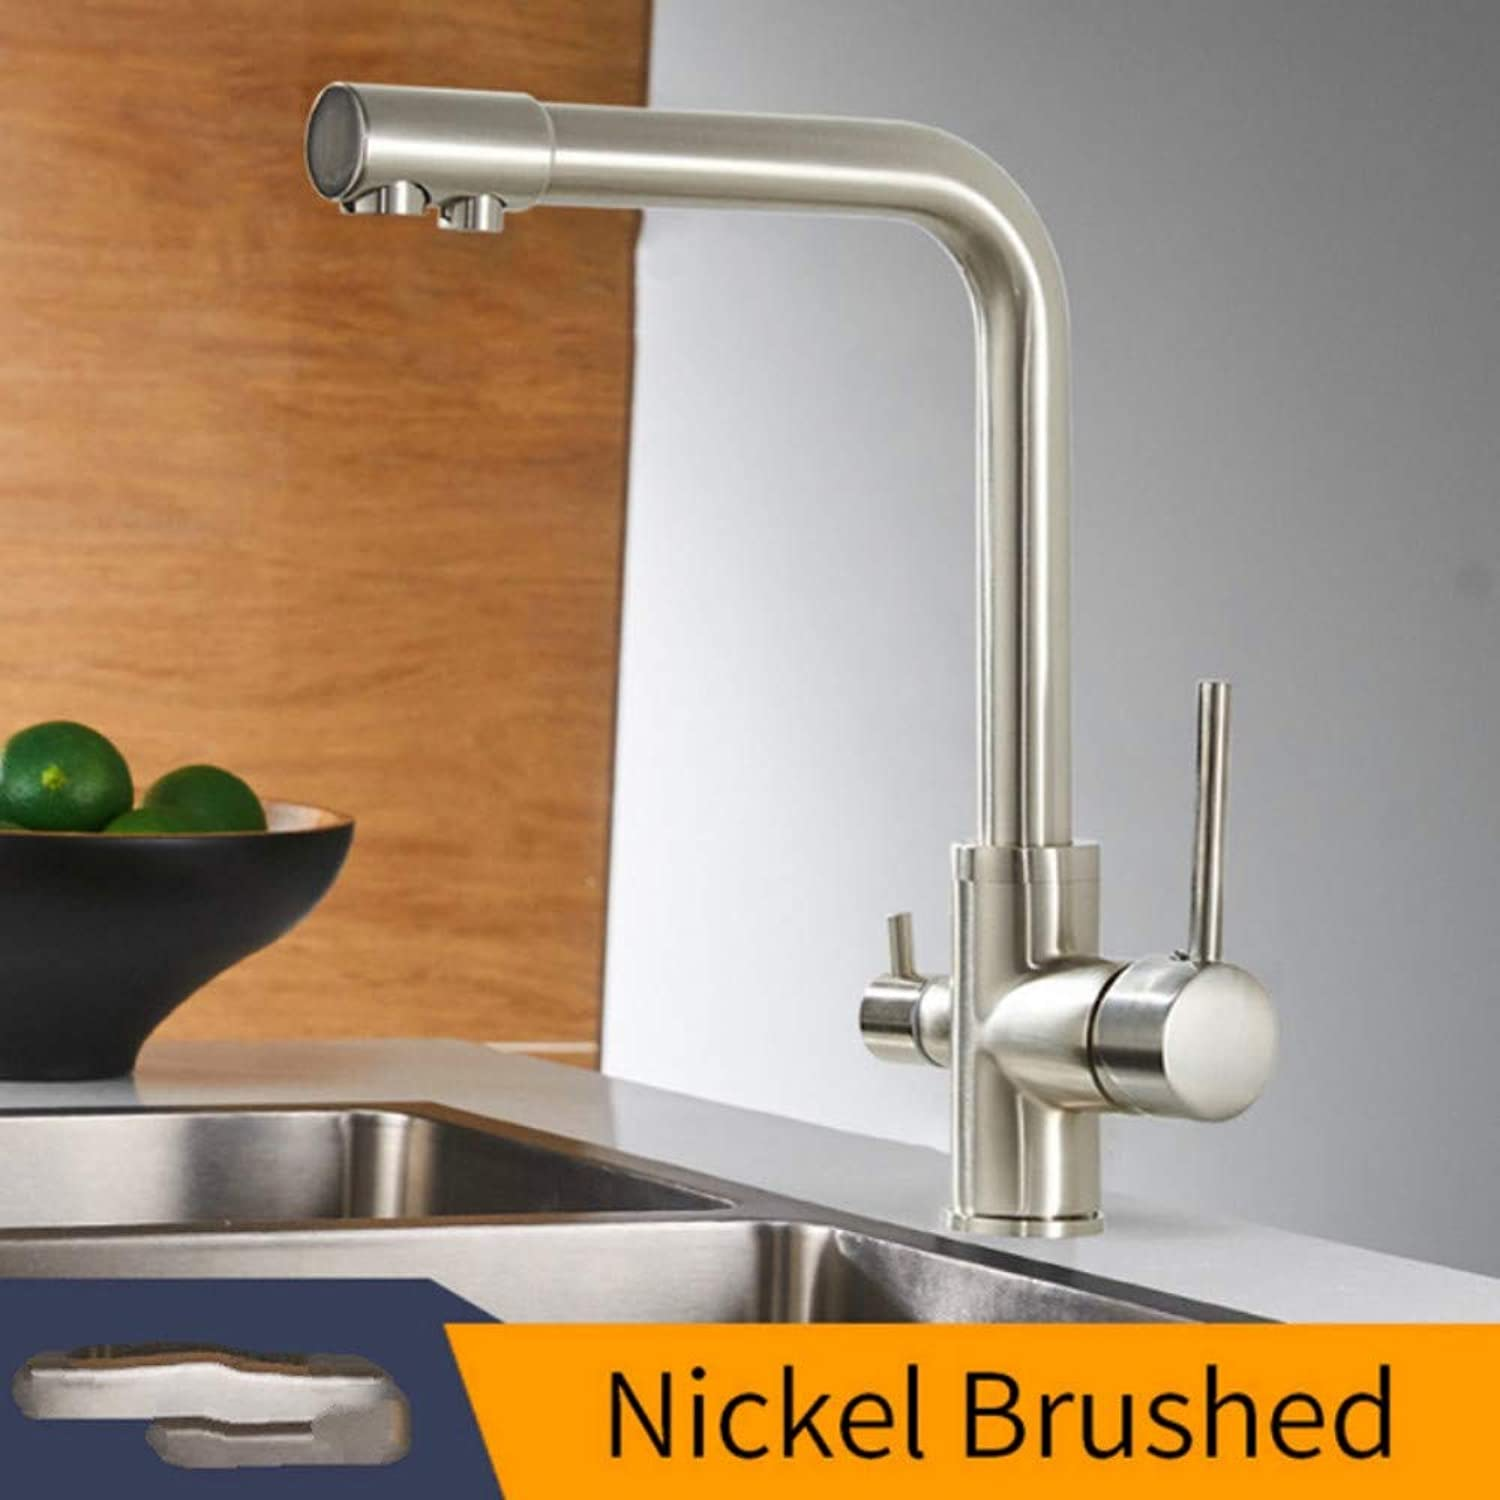 Lddpl Filter Kitchen Faucets Mixer Tap 360 redation with Water Purification Features Mixer Tap Crane for Kitchen